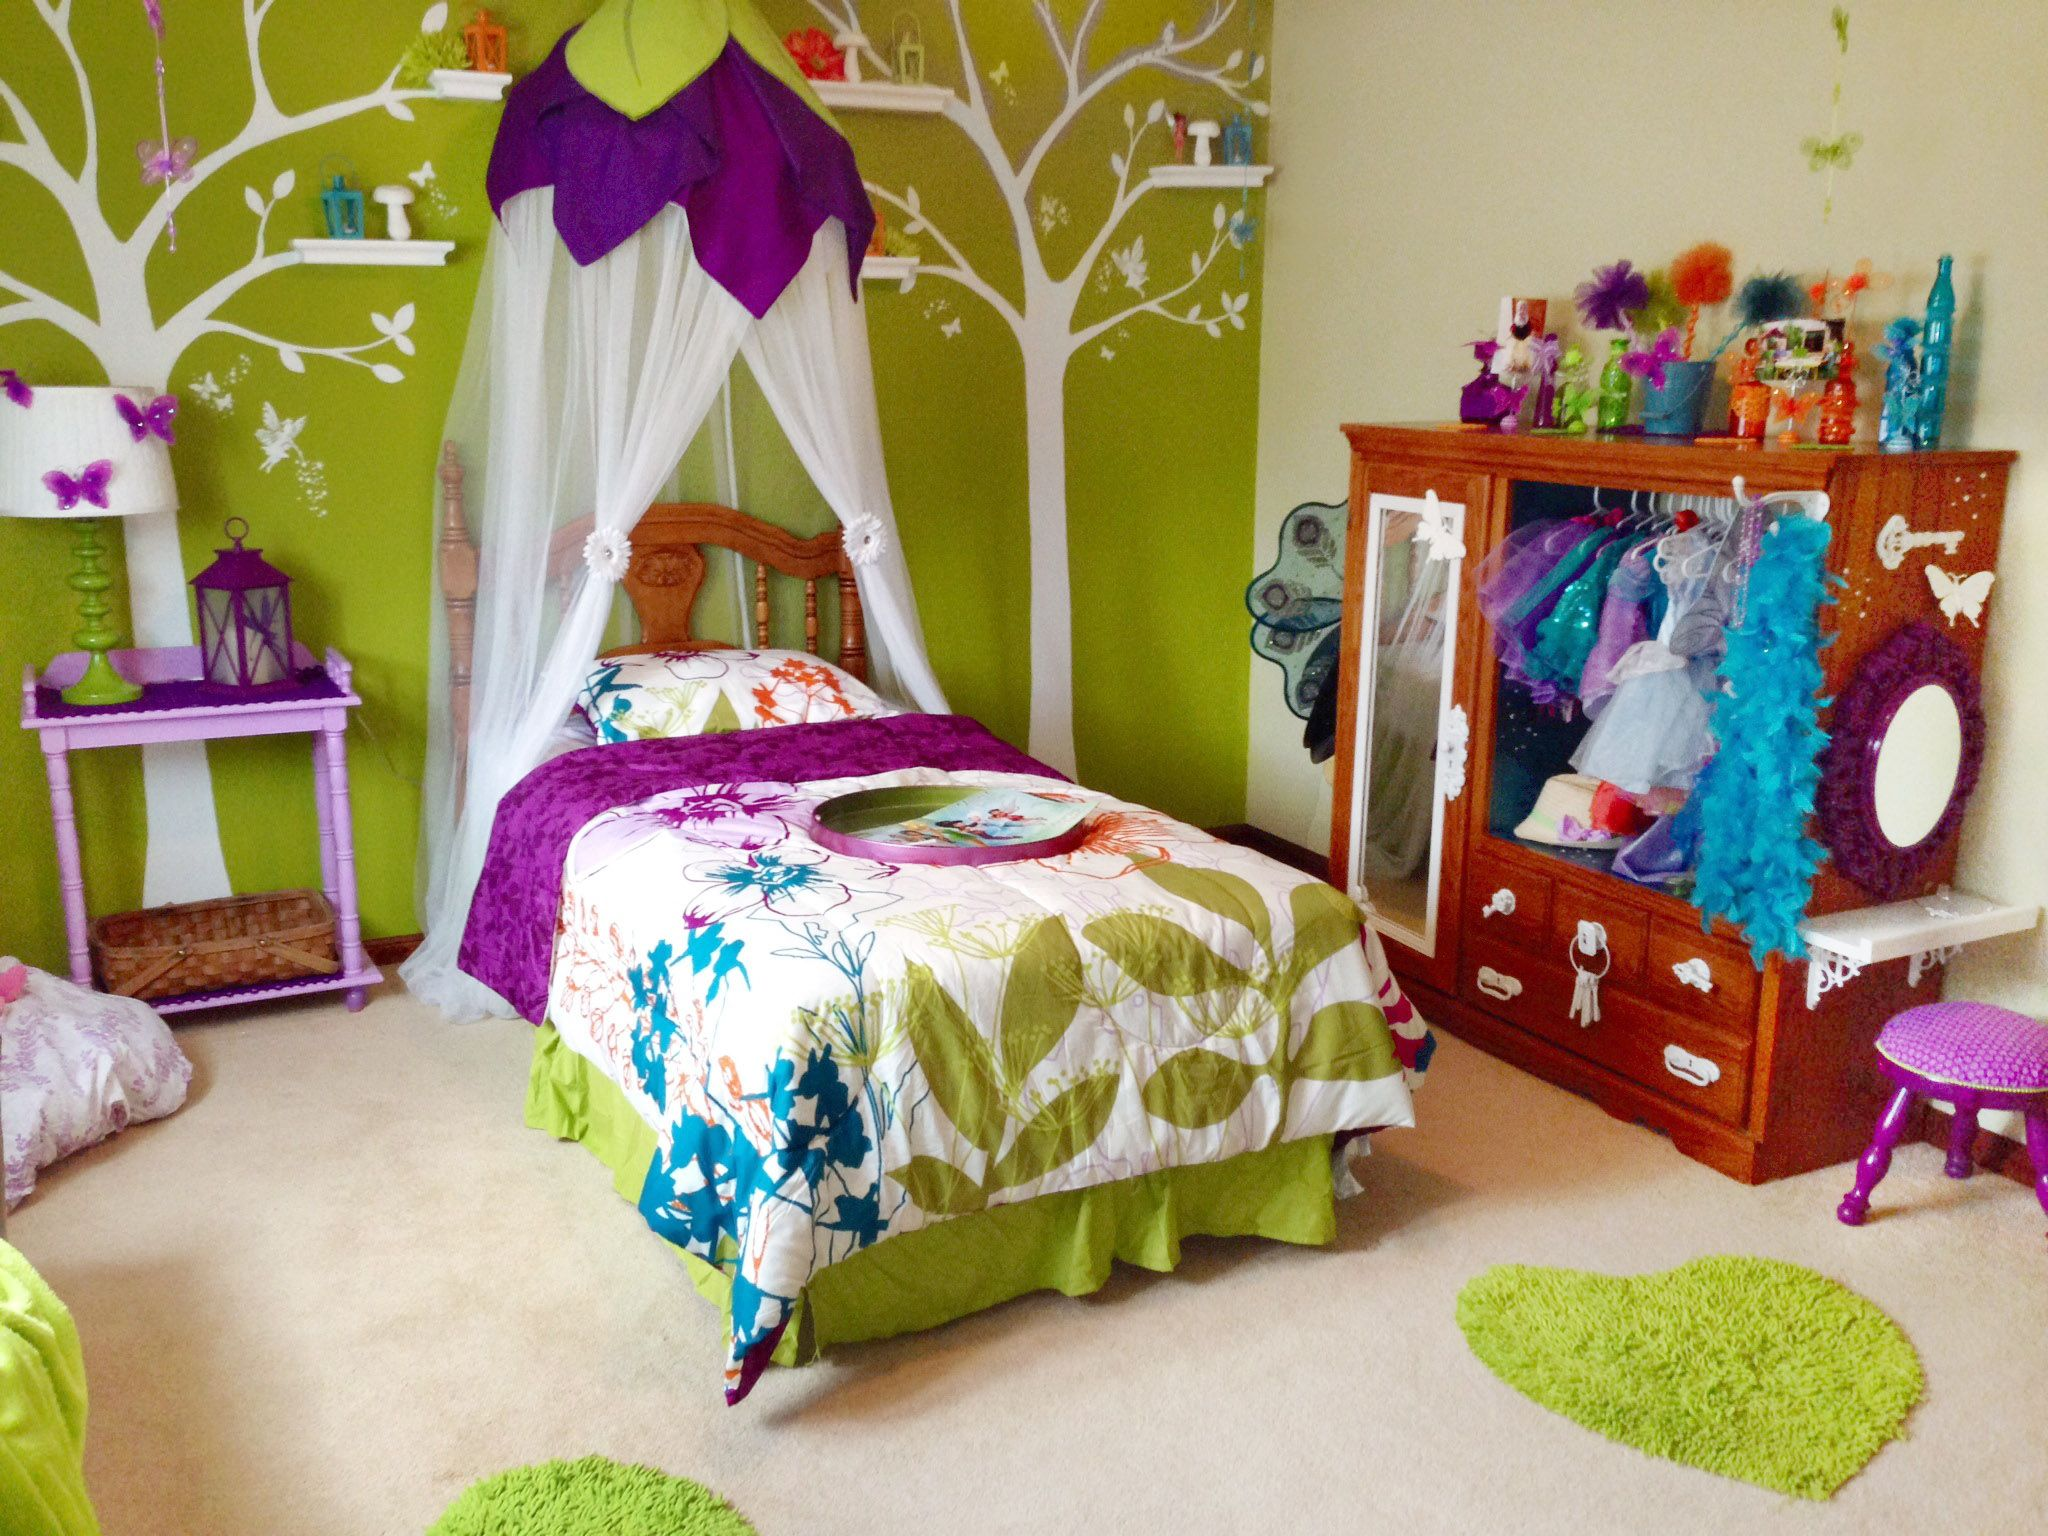 Magical fairland bedroom makeover reveal with diy upcycled fairy